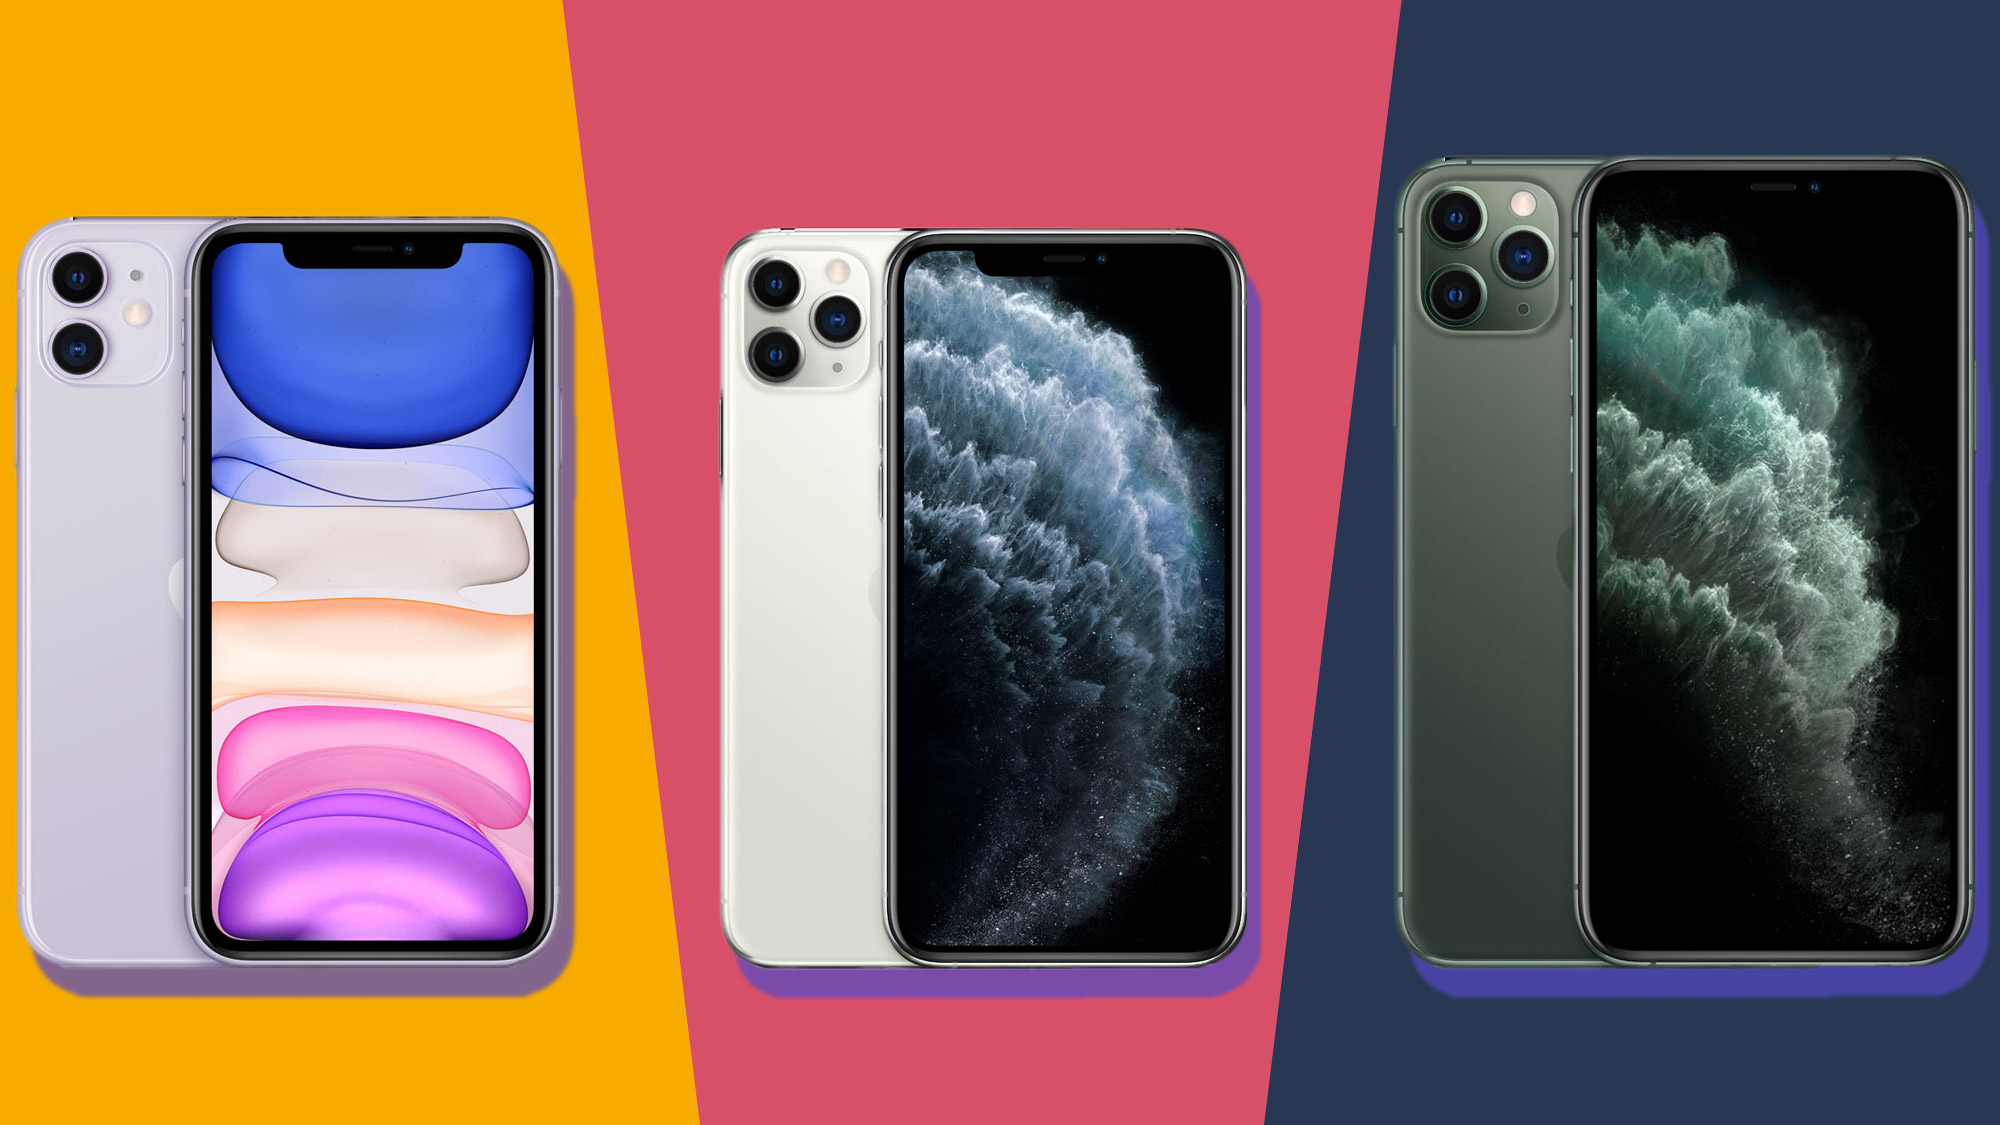 iPhone 11 vs iPhone 11 Pro vs iPhone 11 Pro Max the new